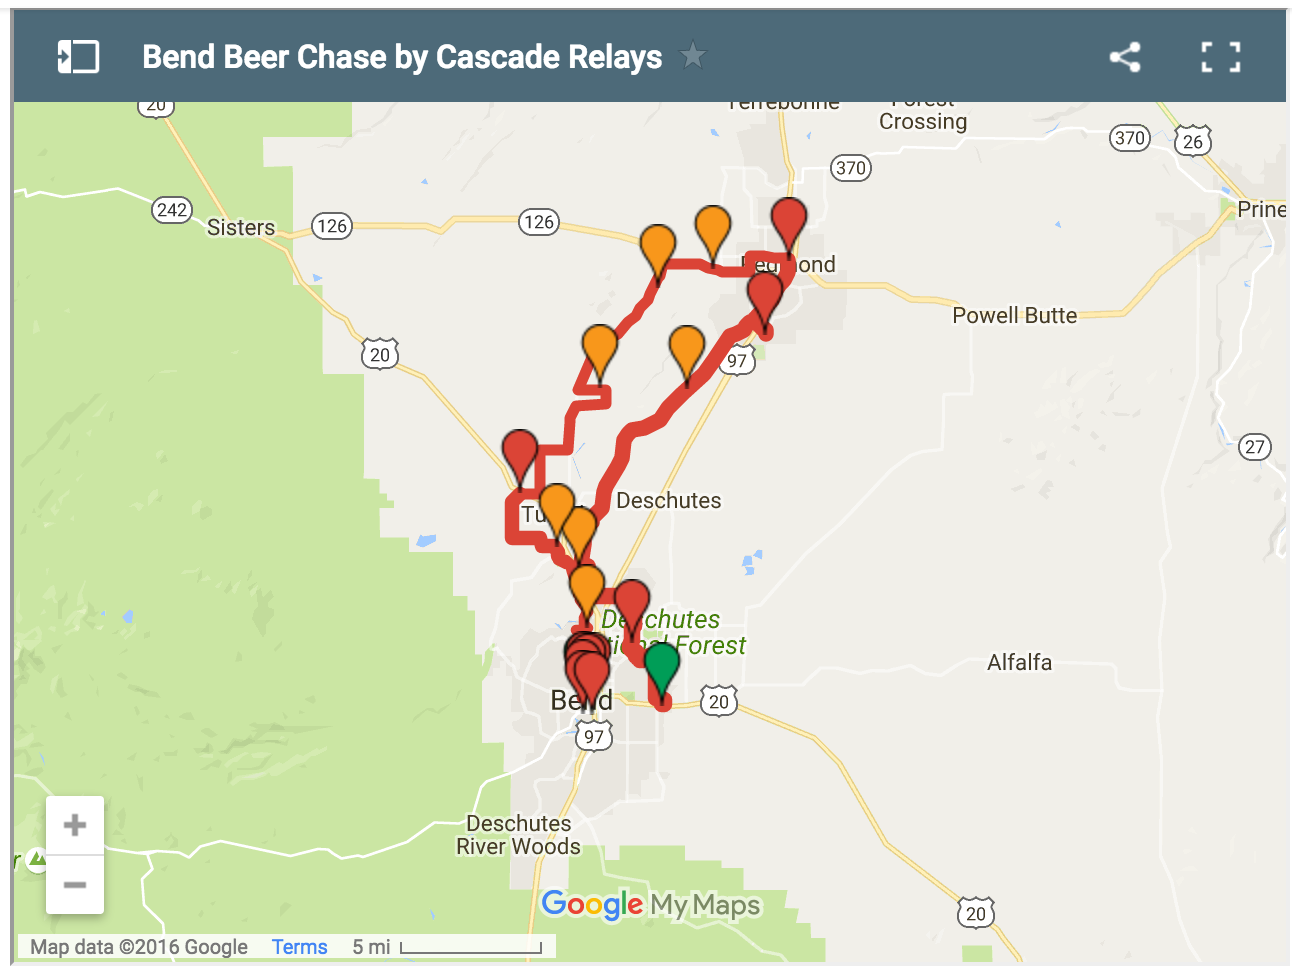 Bend Beer Chase course